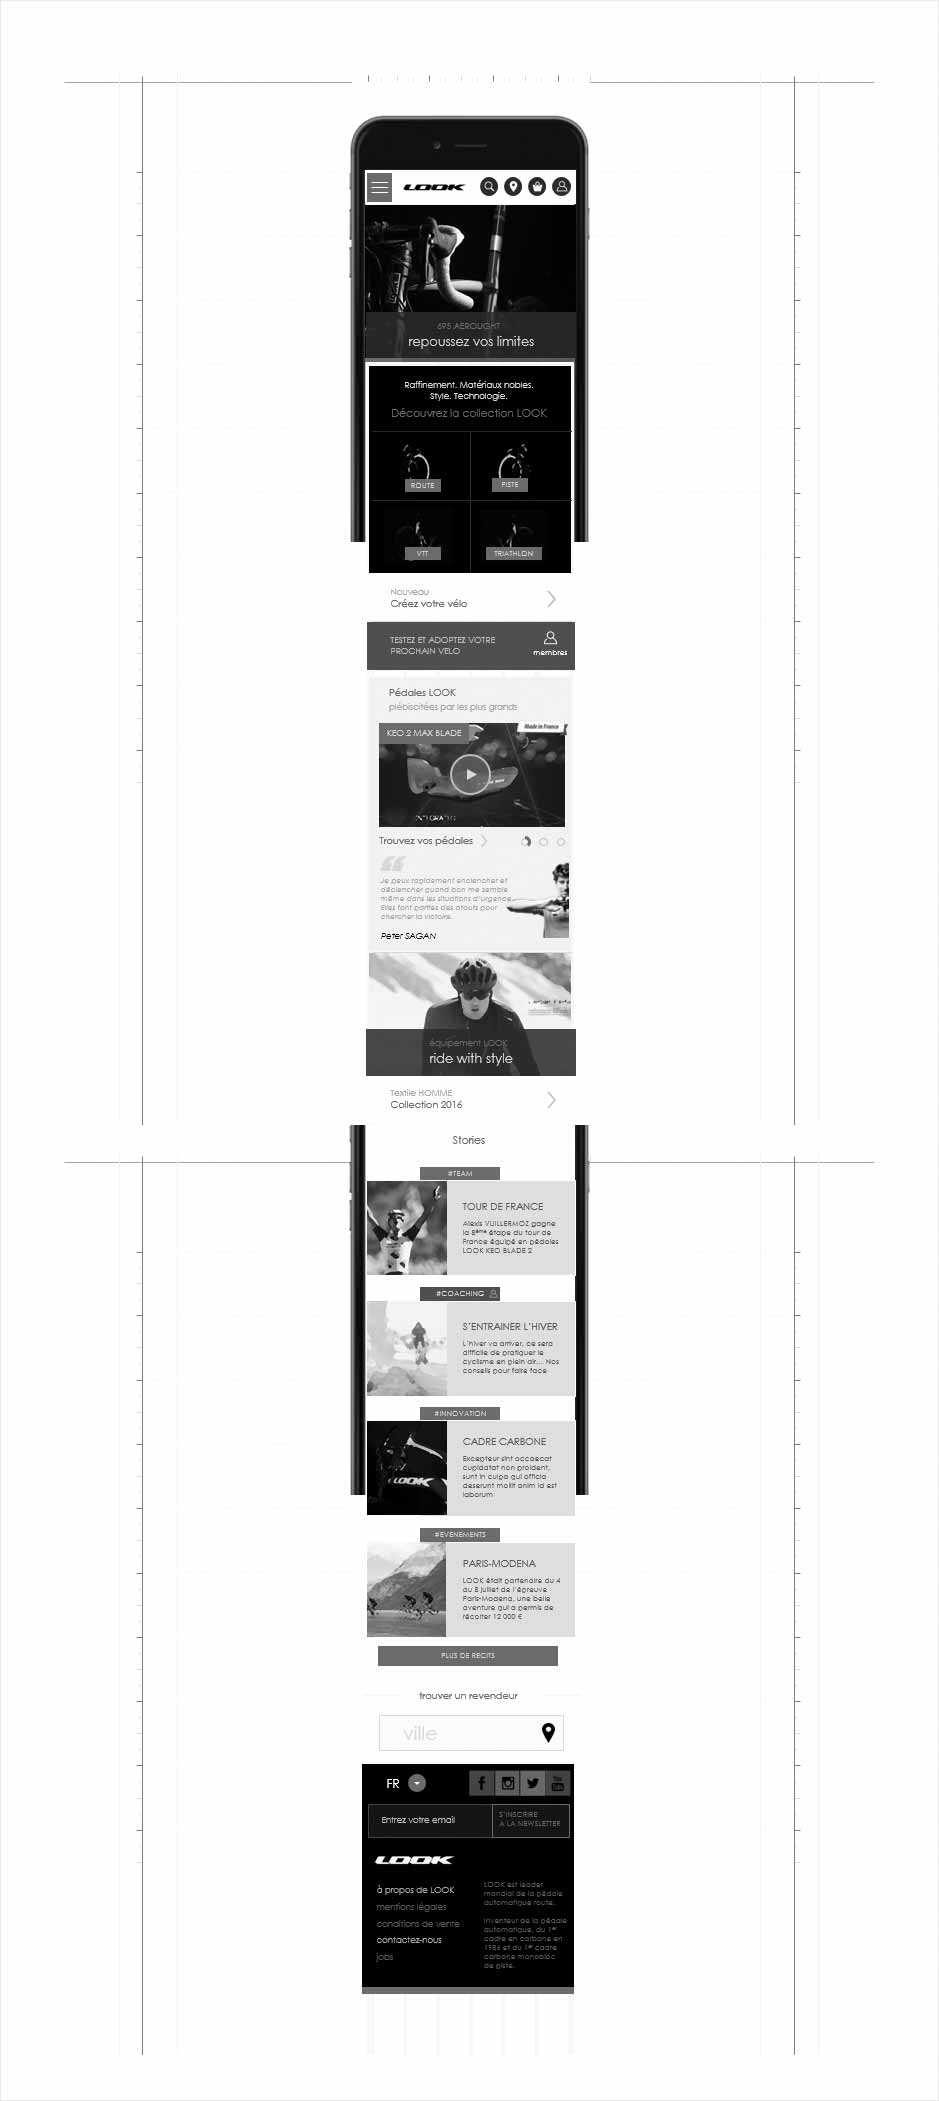 wireframe accueil mobile, wireframe look cycle